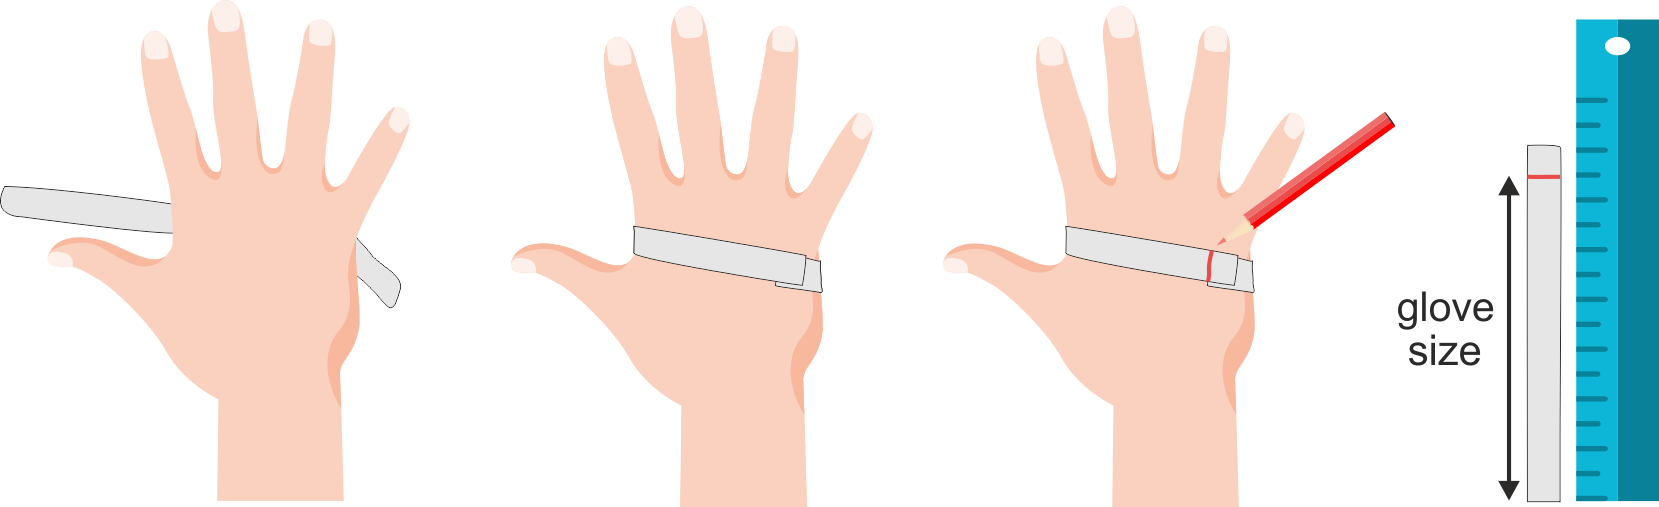 Alternative method of hand measurement for glove fitting